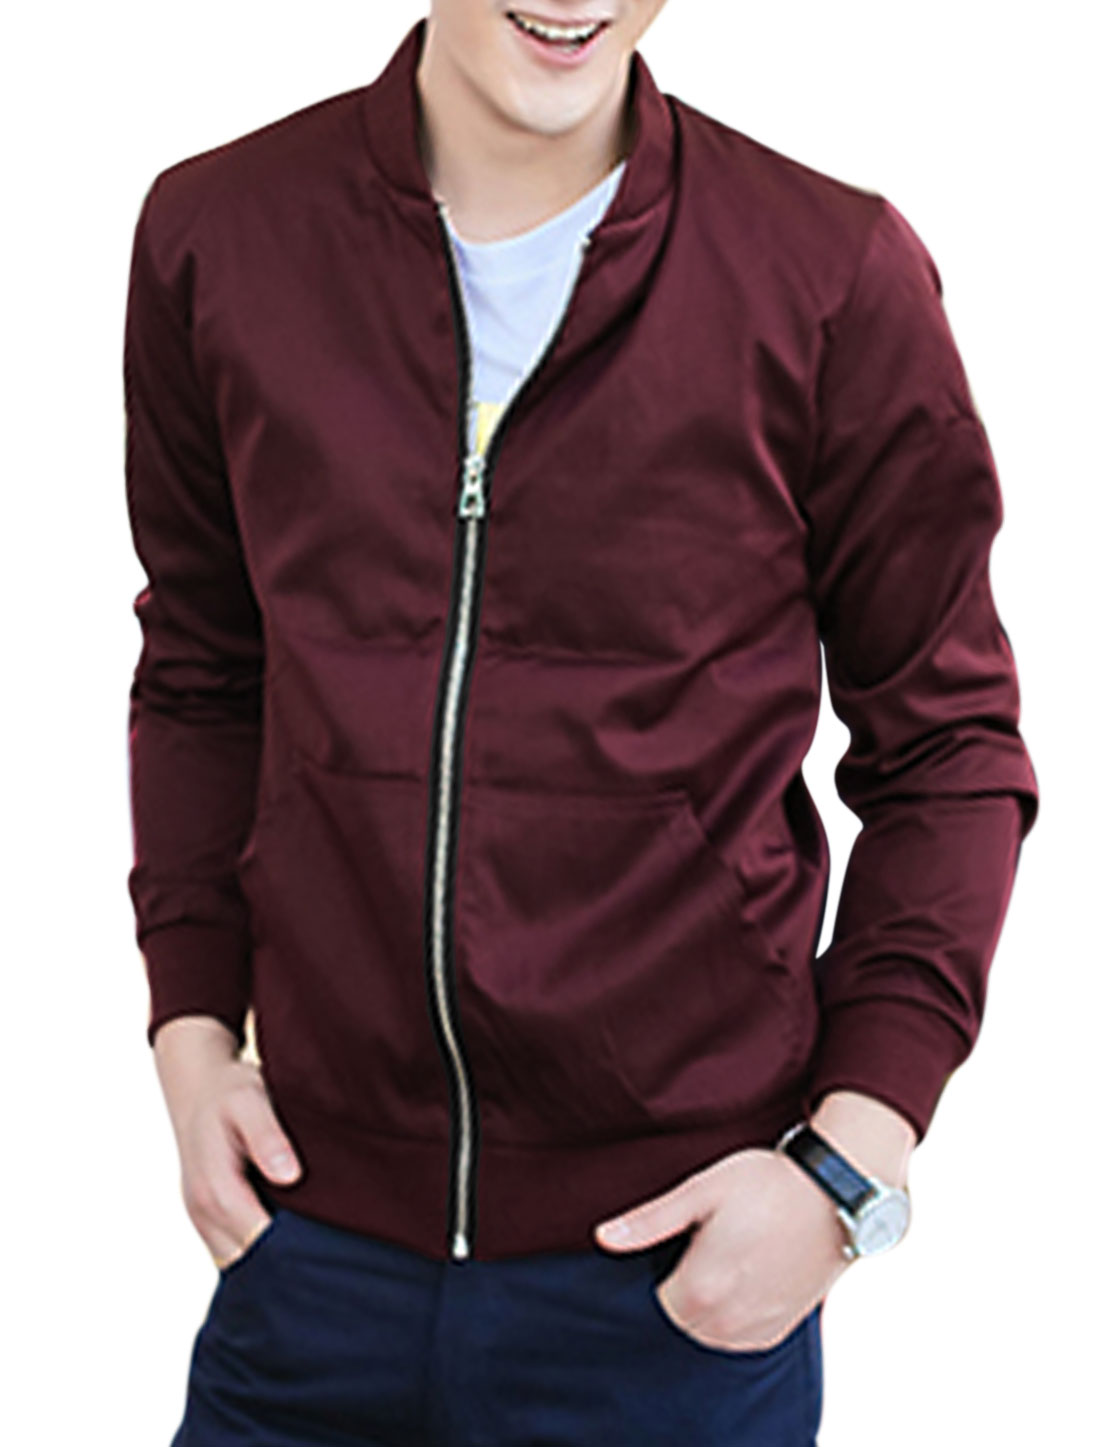 Men Stand Collar Long Sleeve Kangaroo Pocket Jacket Burgundy M